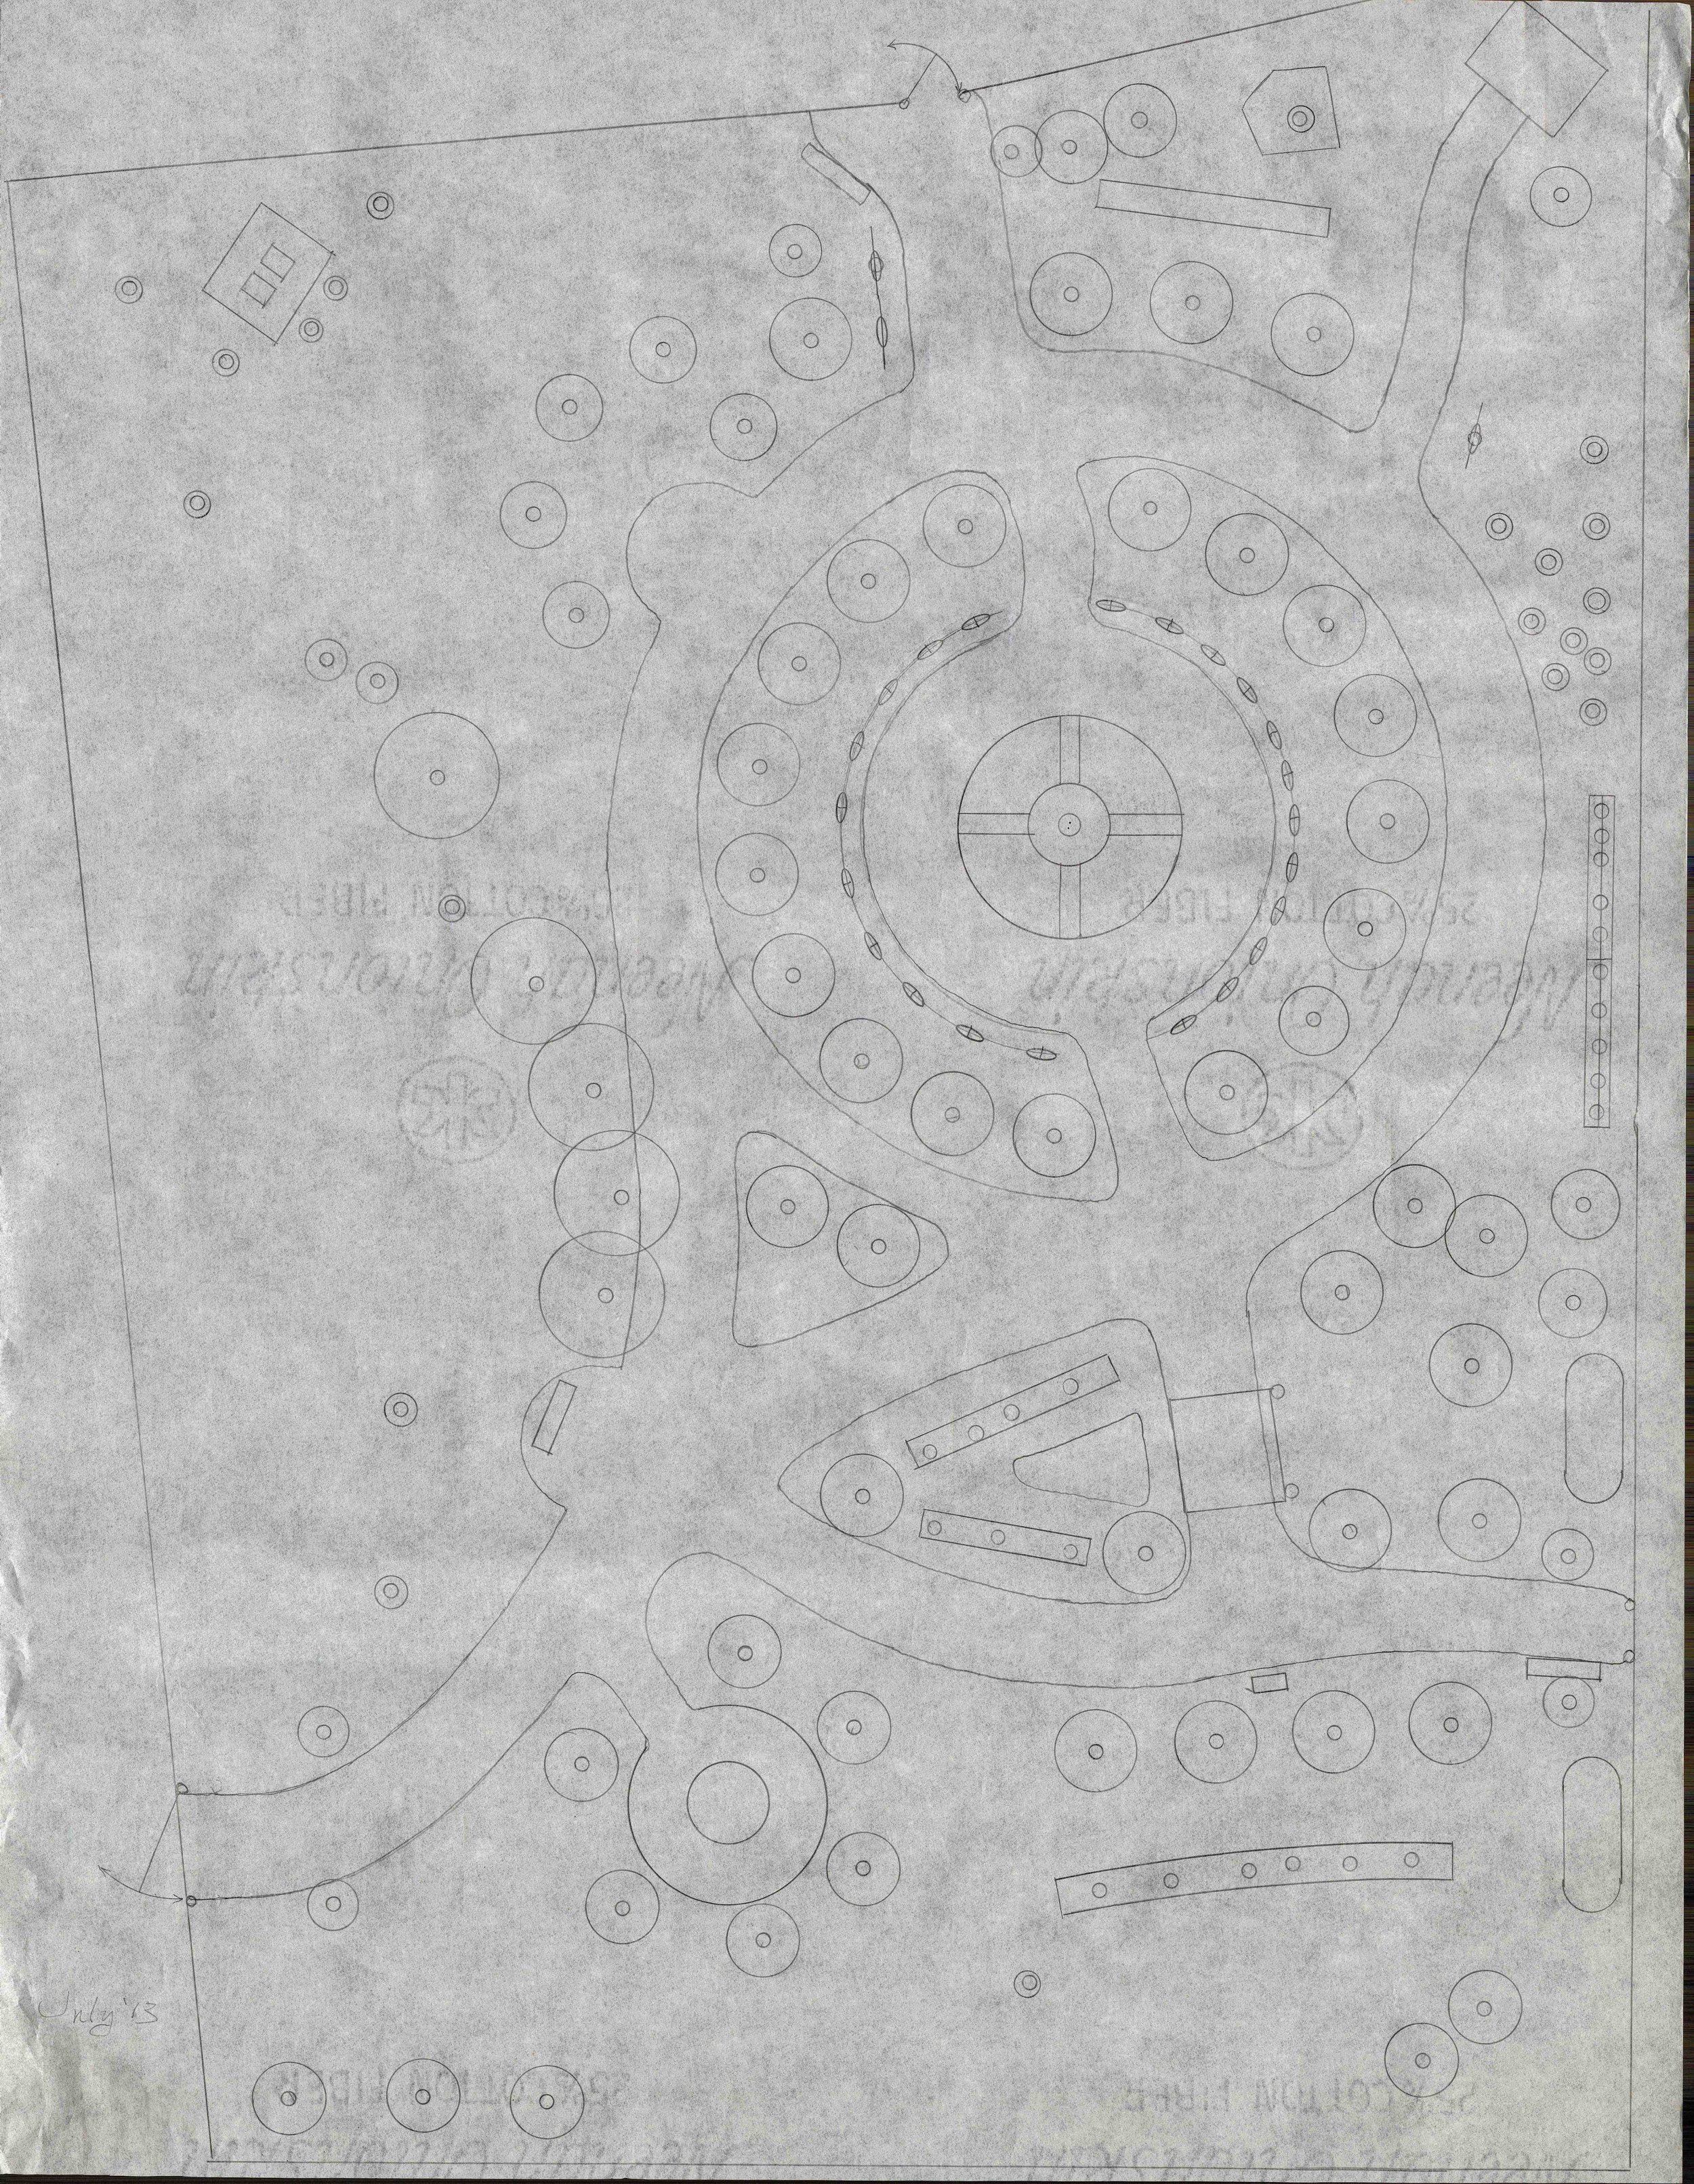 This tracing, done on tracing paper in pencil, shows a final, clean version of the map with minimal detail. This map, after some additional changes to the south end layout, is most likely to have served as a foundation for the graphic created by Larry and as a guide for early workdays and plantings.